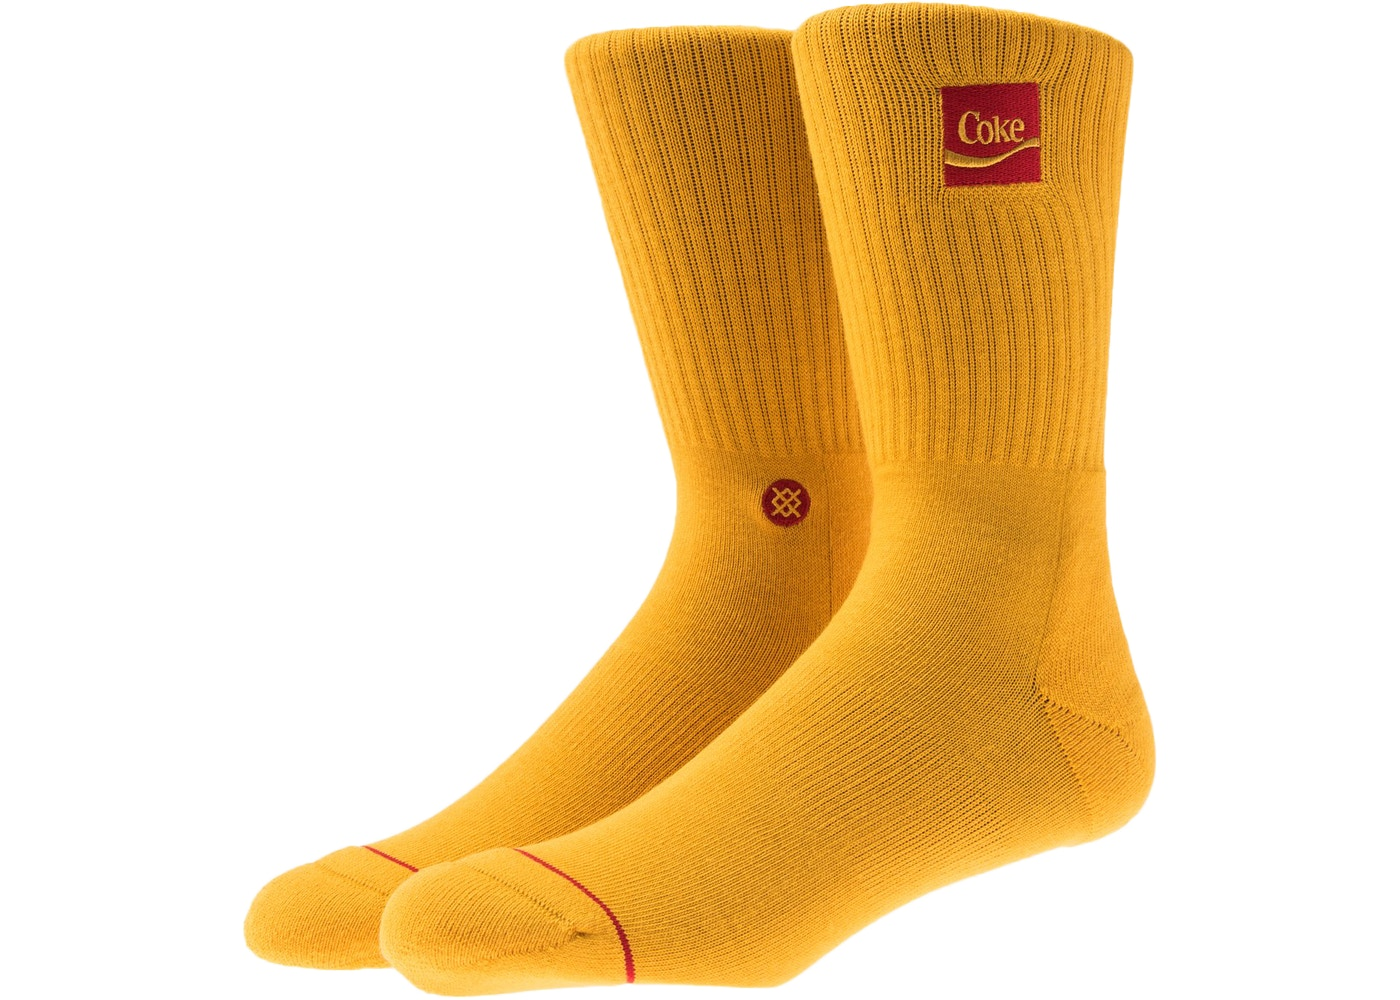 c86a855a09bc8 Kith x Coca-Cola x Stance Crew Sock Yellow - FW18